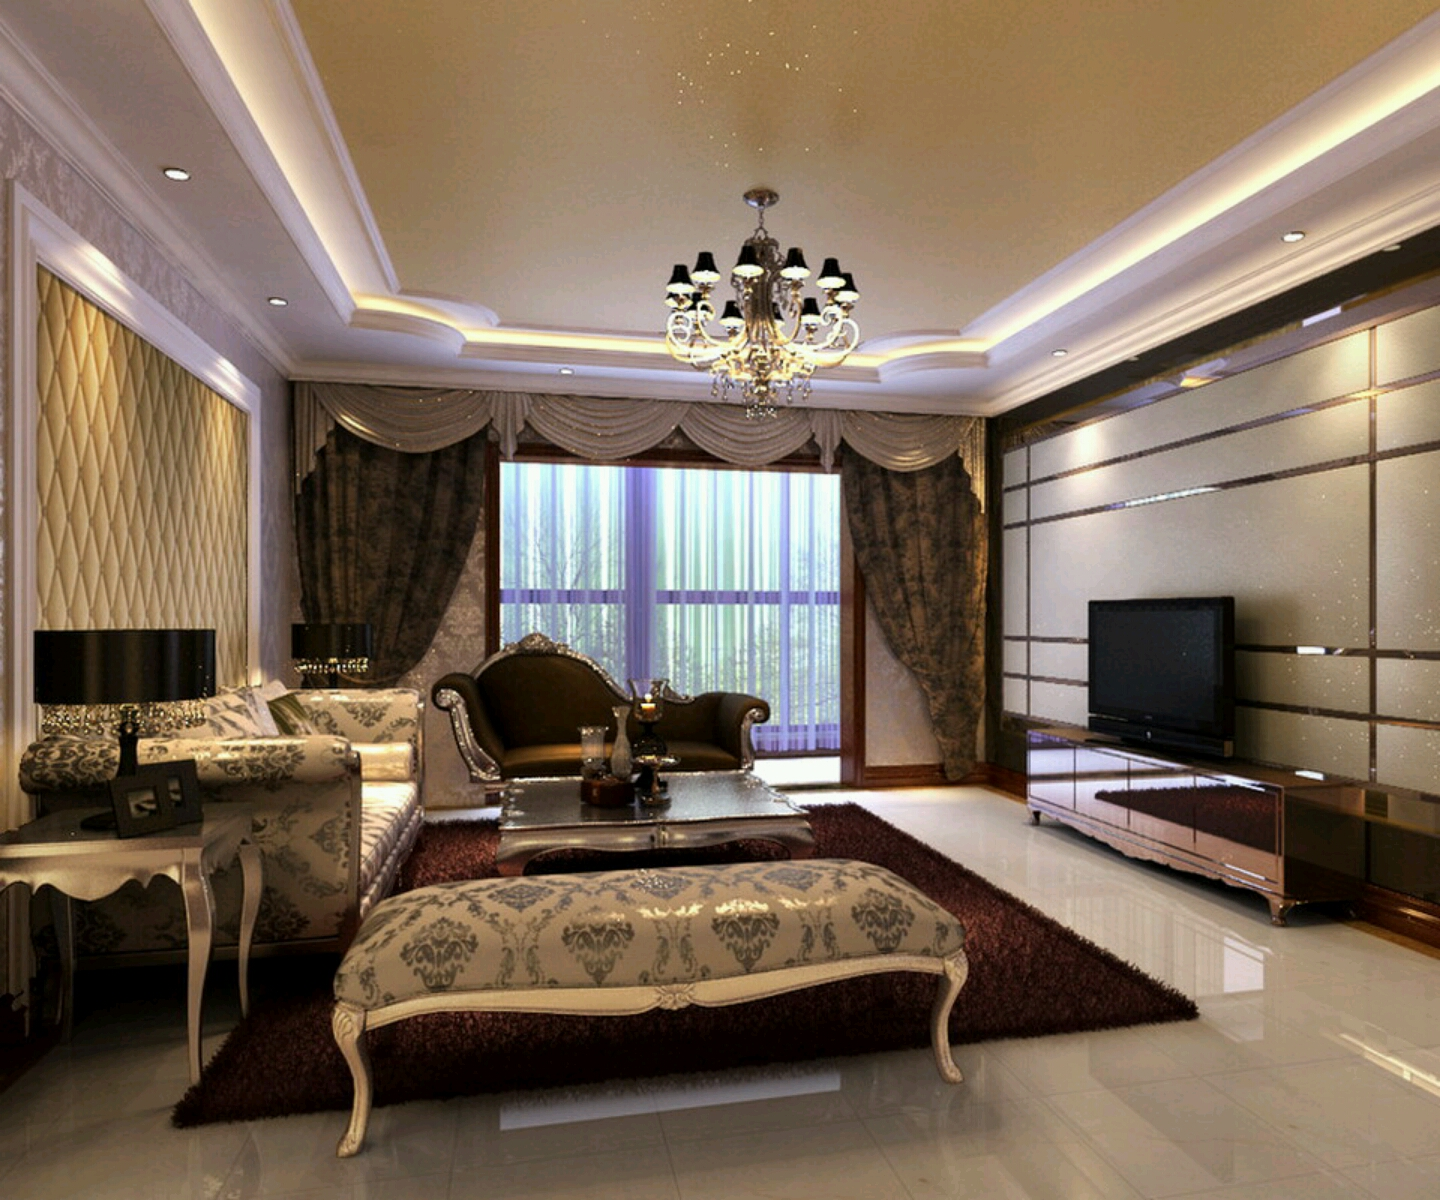 Interior decorating ideas living rooms dream house for Home furnishing ideas living room